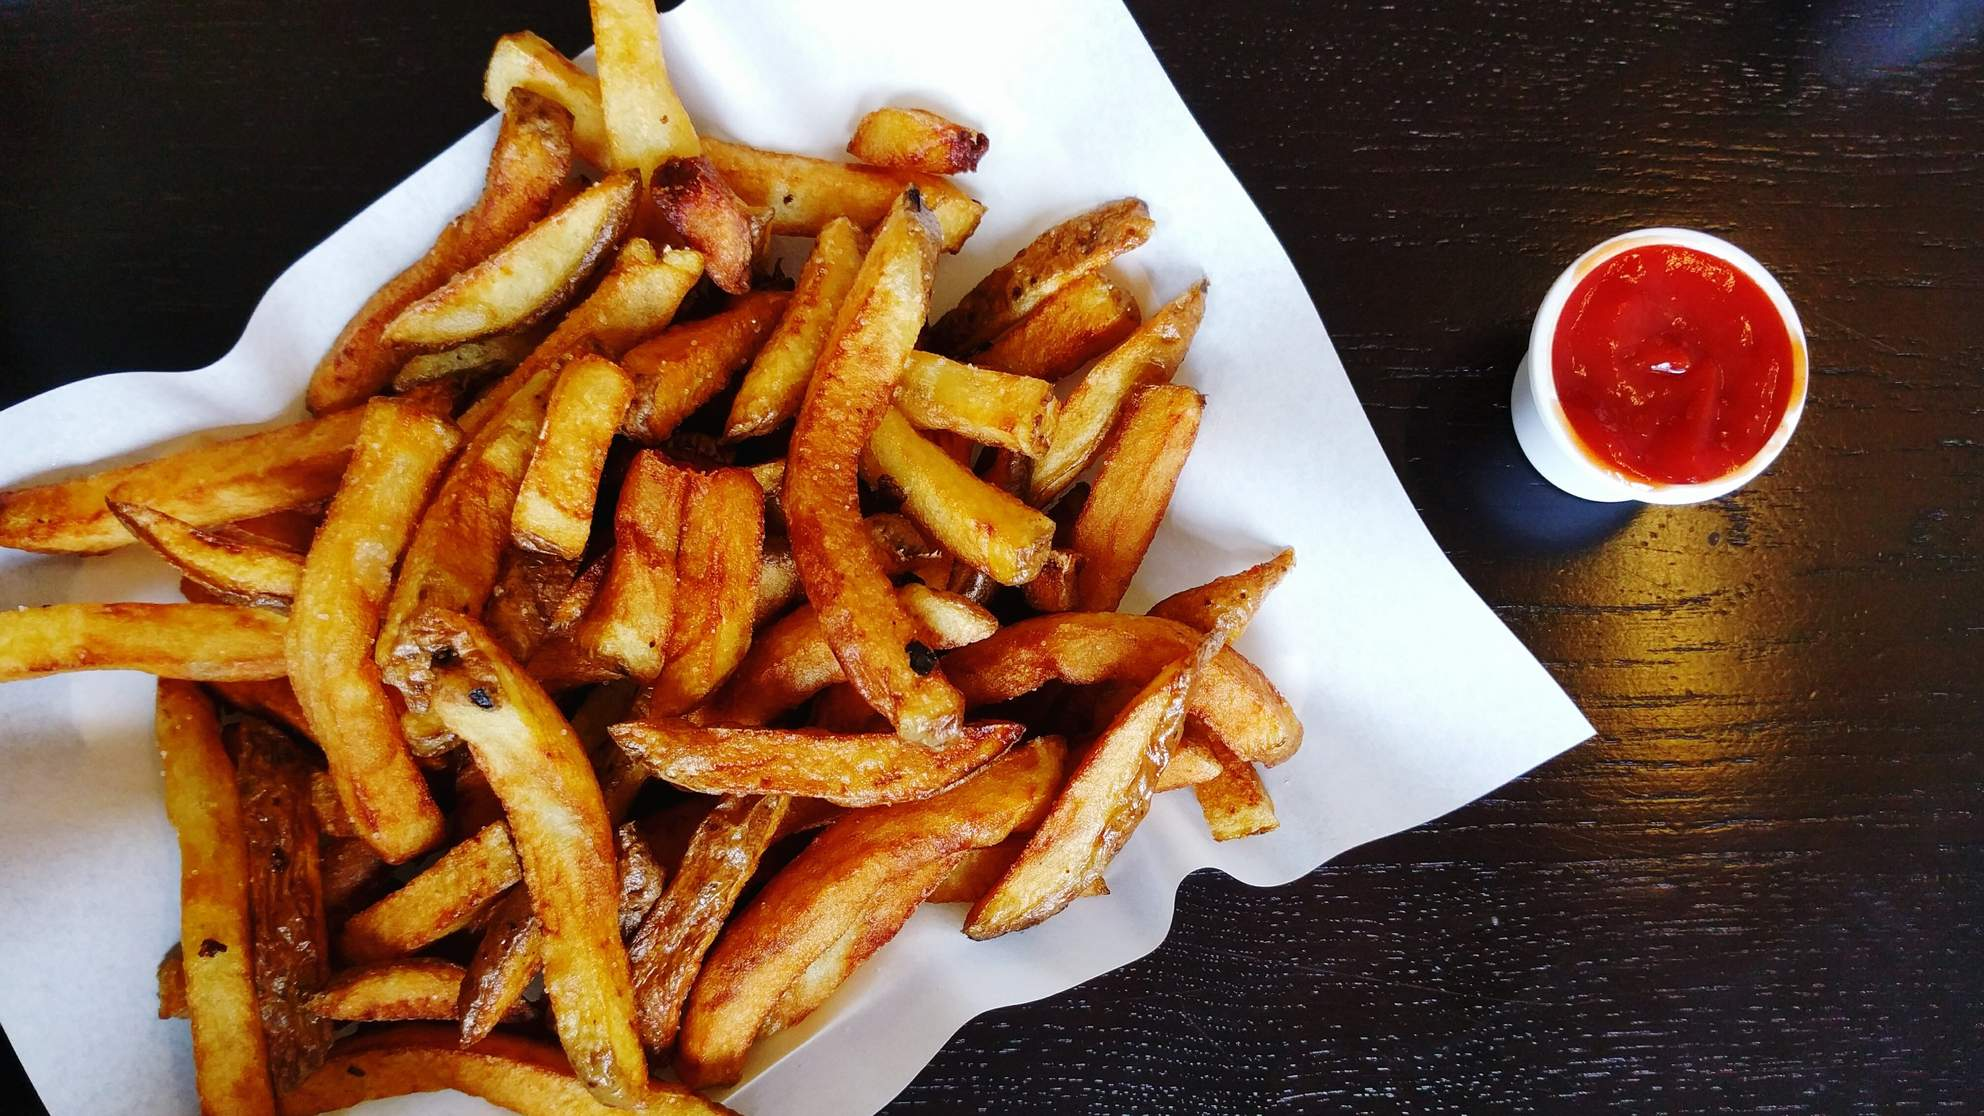 French fries and ketchup on a table